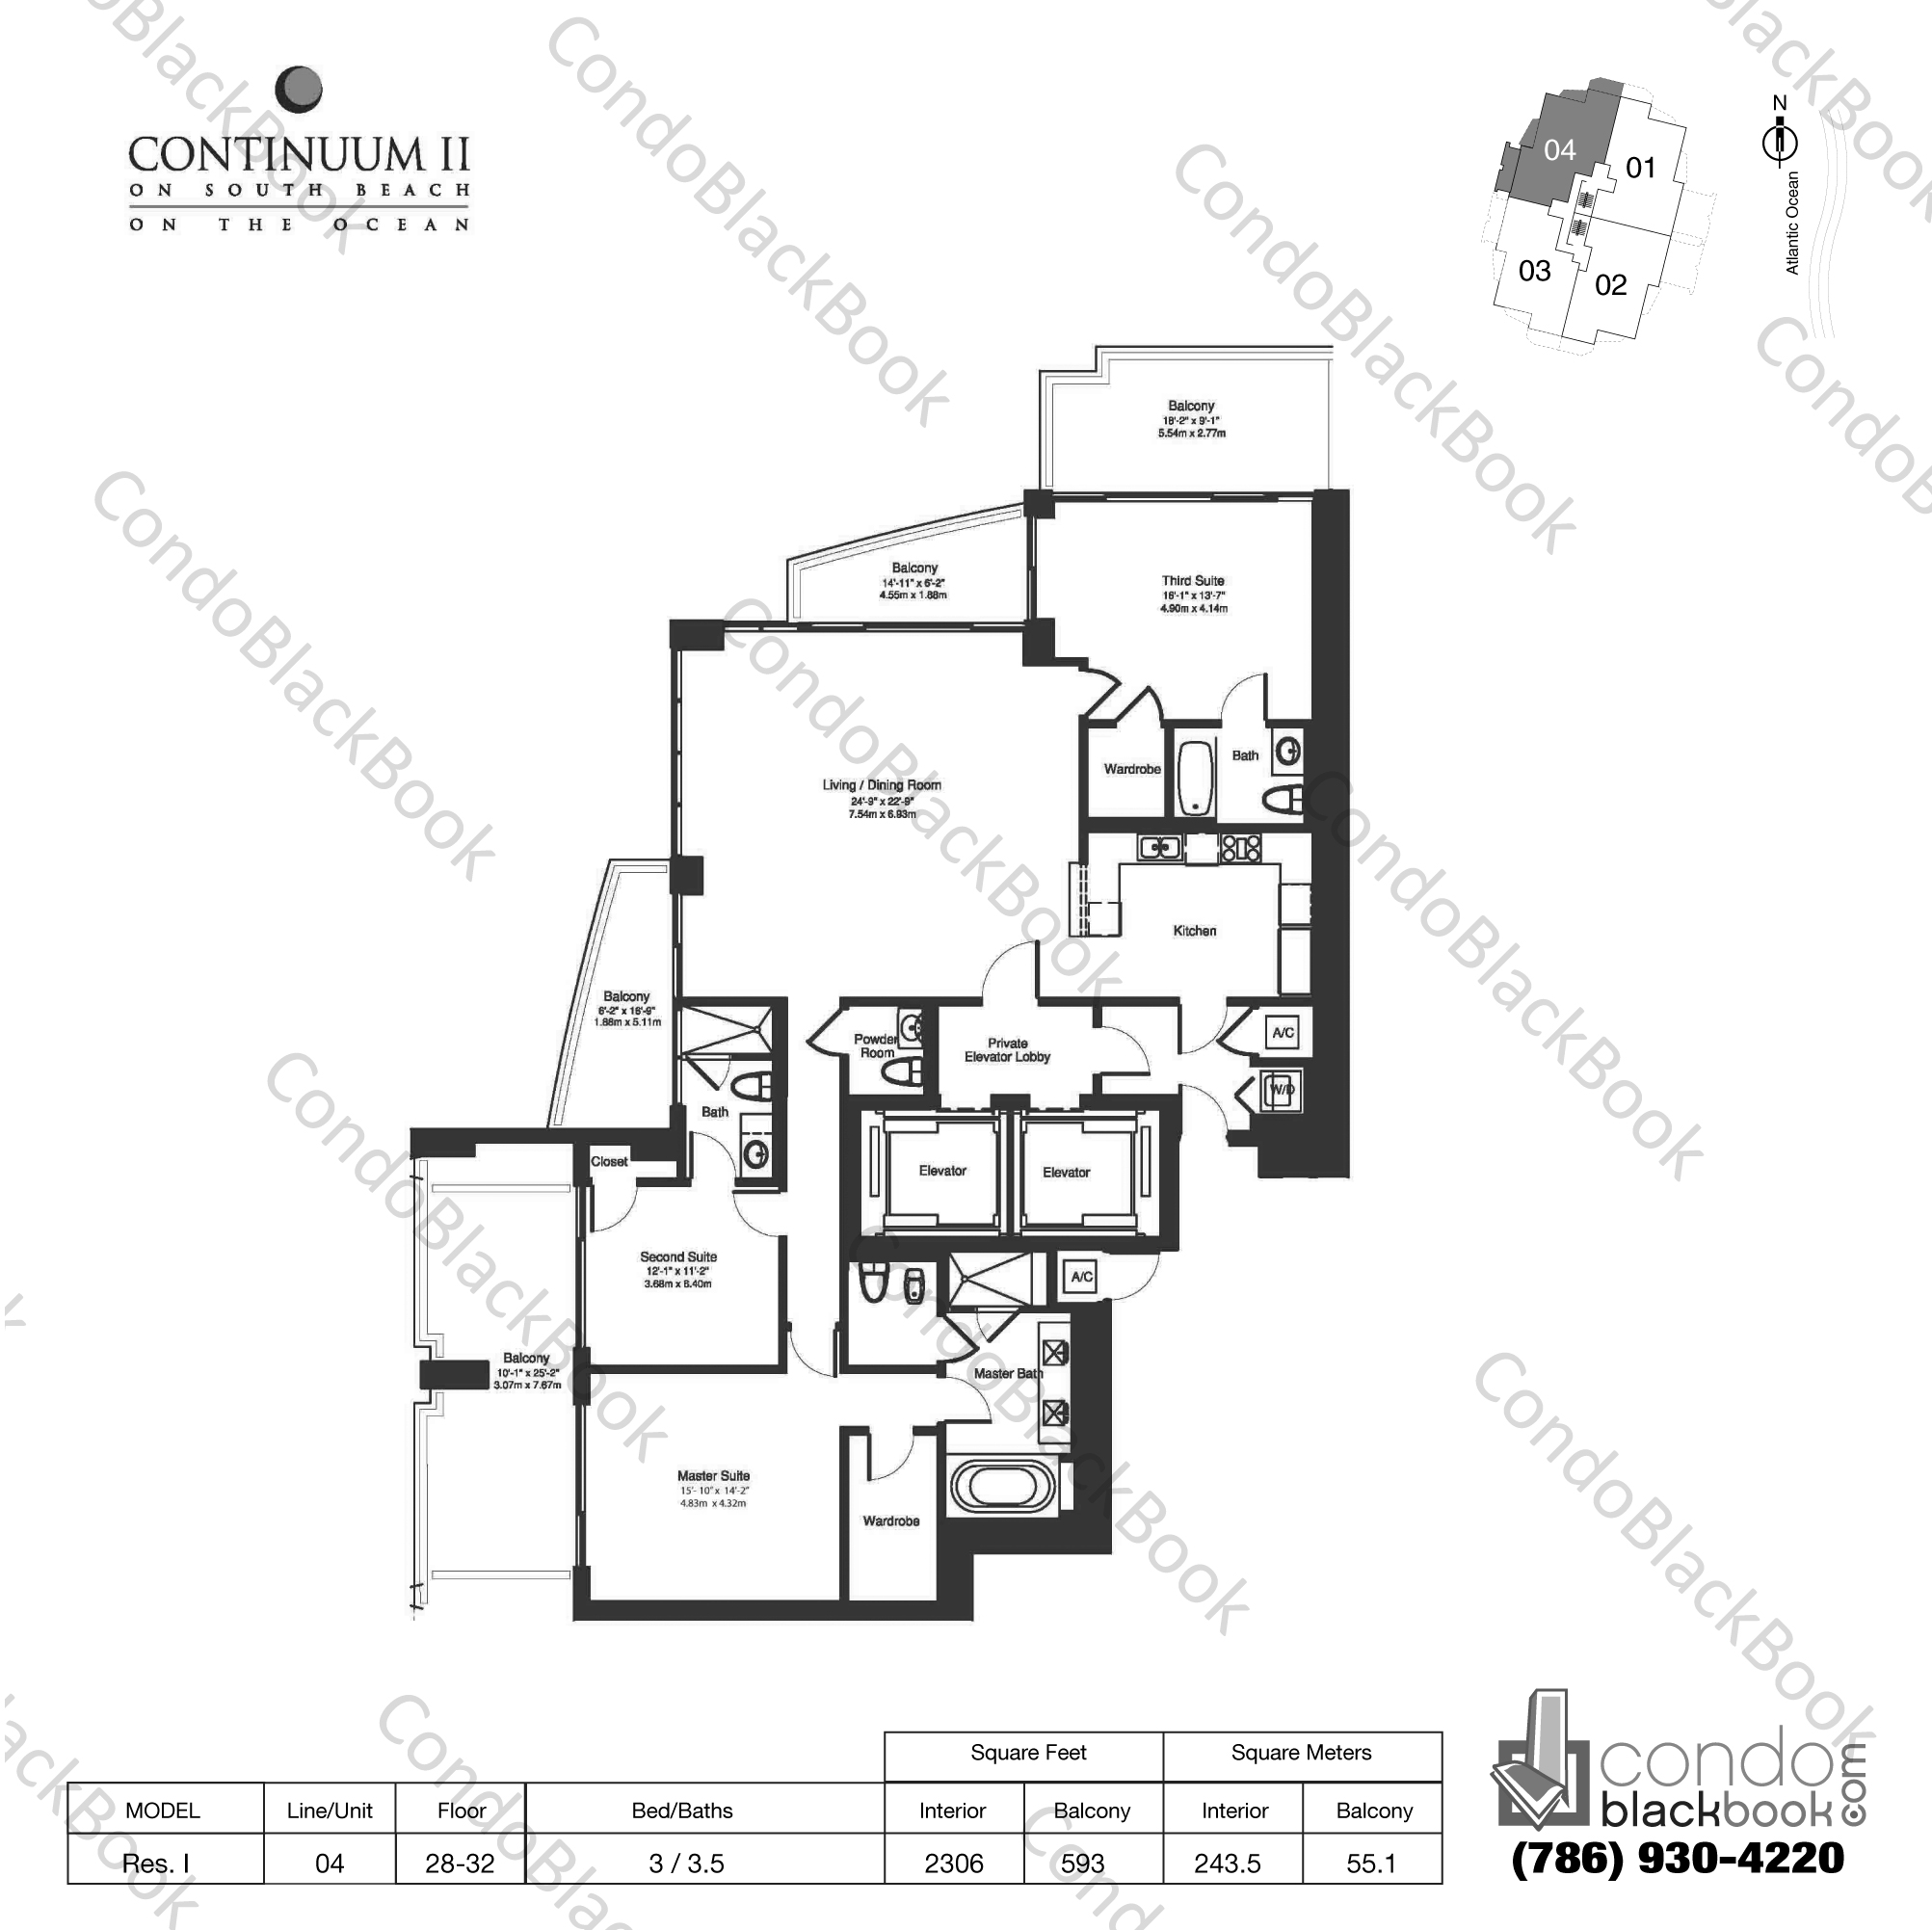 Floor plan for Continuum II North South Beach Miami Beach, model Res. I, line 04, 3 / 3.5 bedrooms, 2306 sq ft